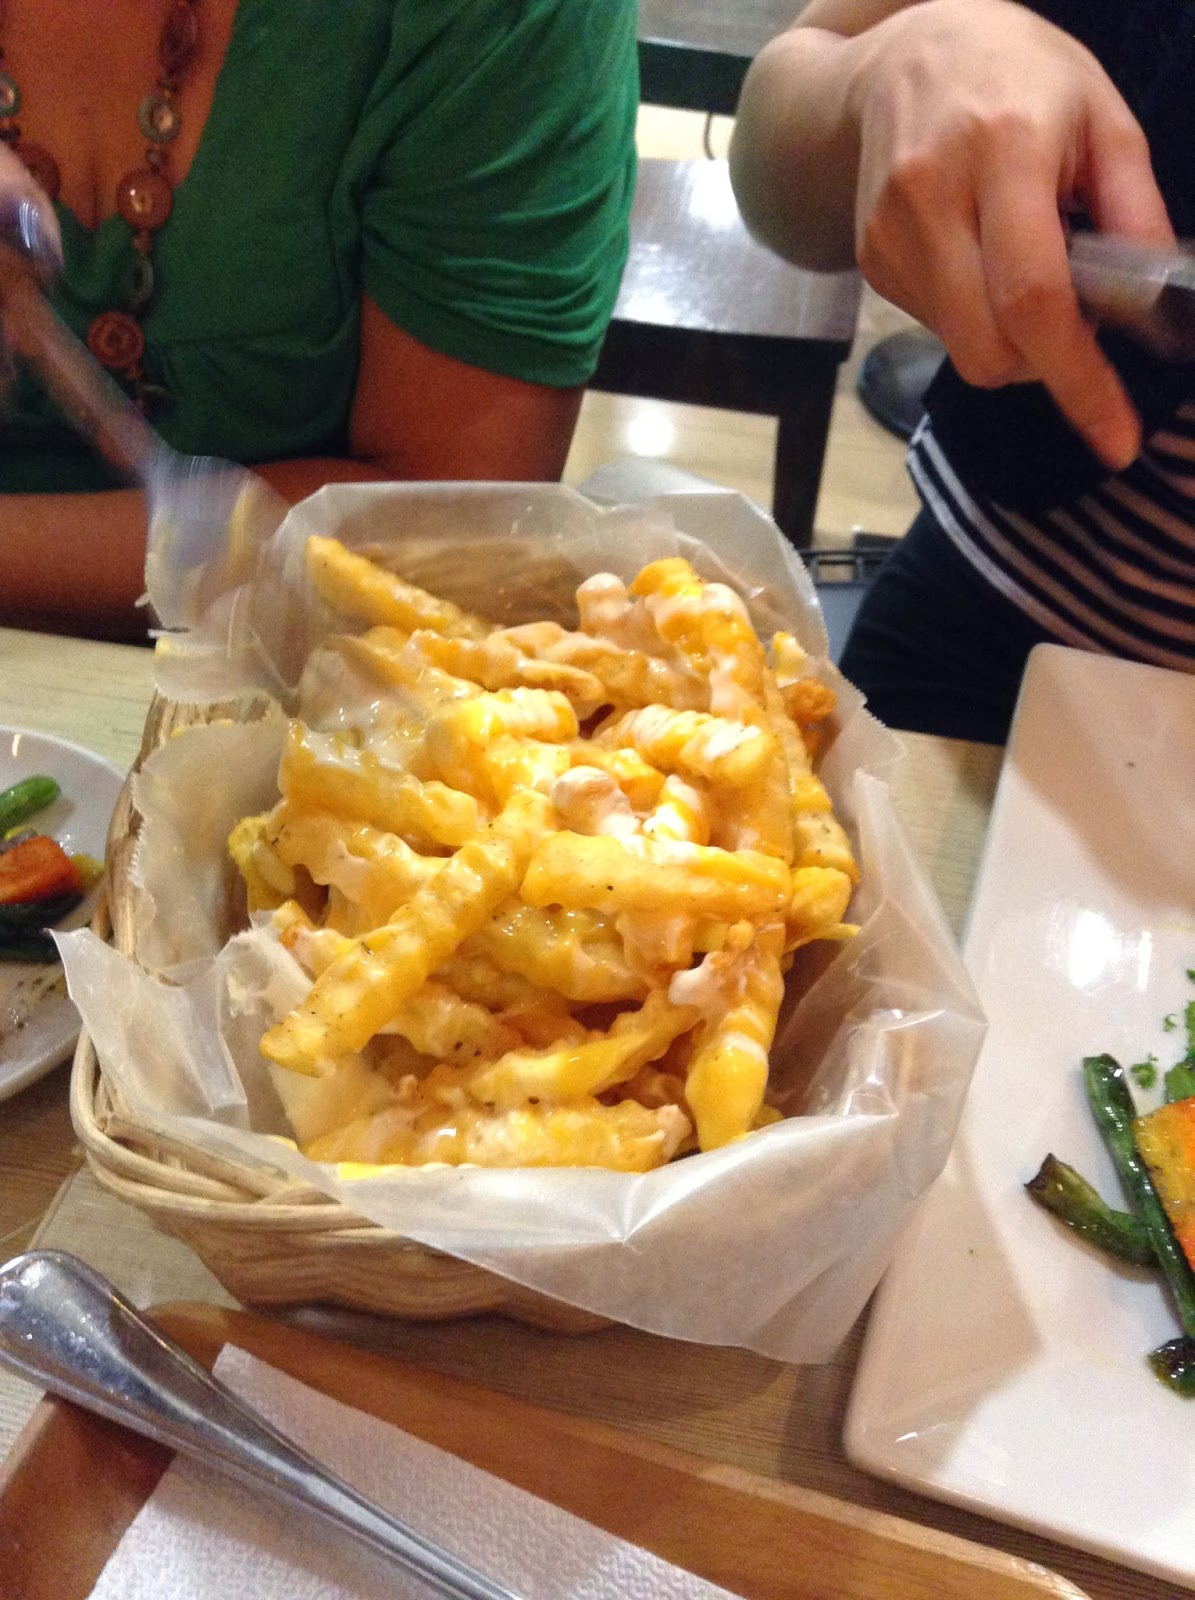 Eating Cheesy Nachos and fries